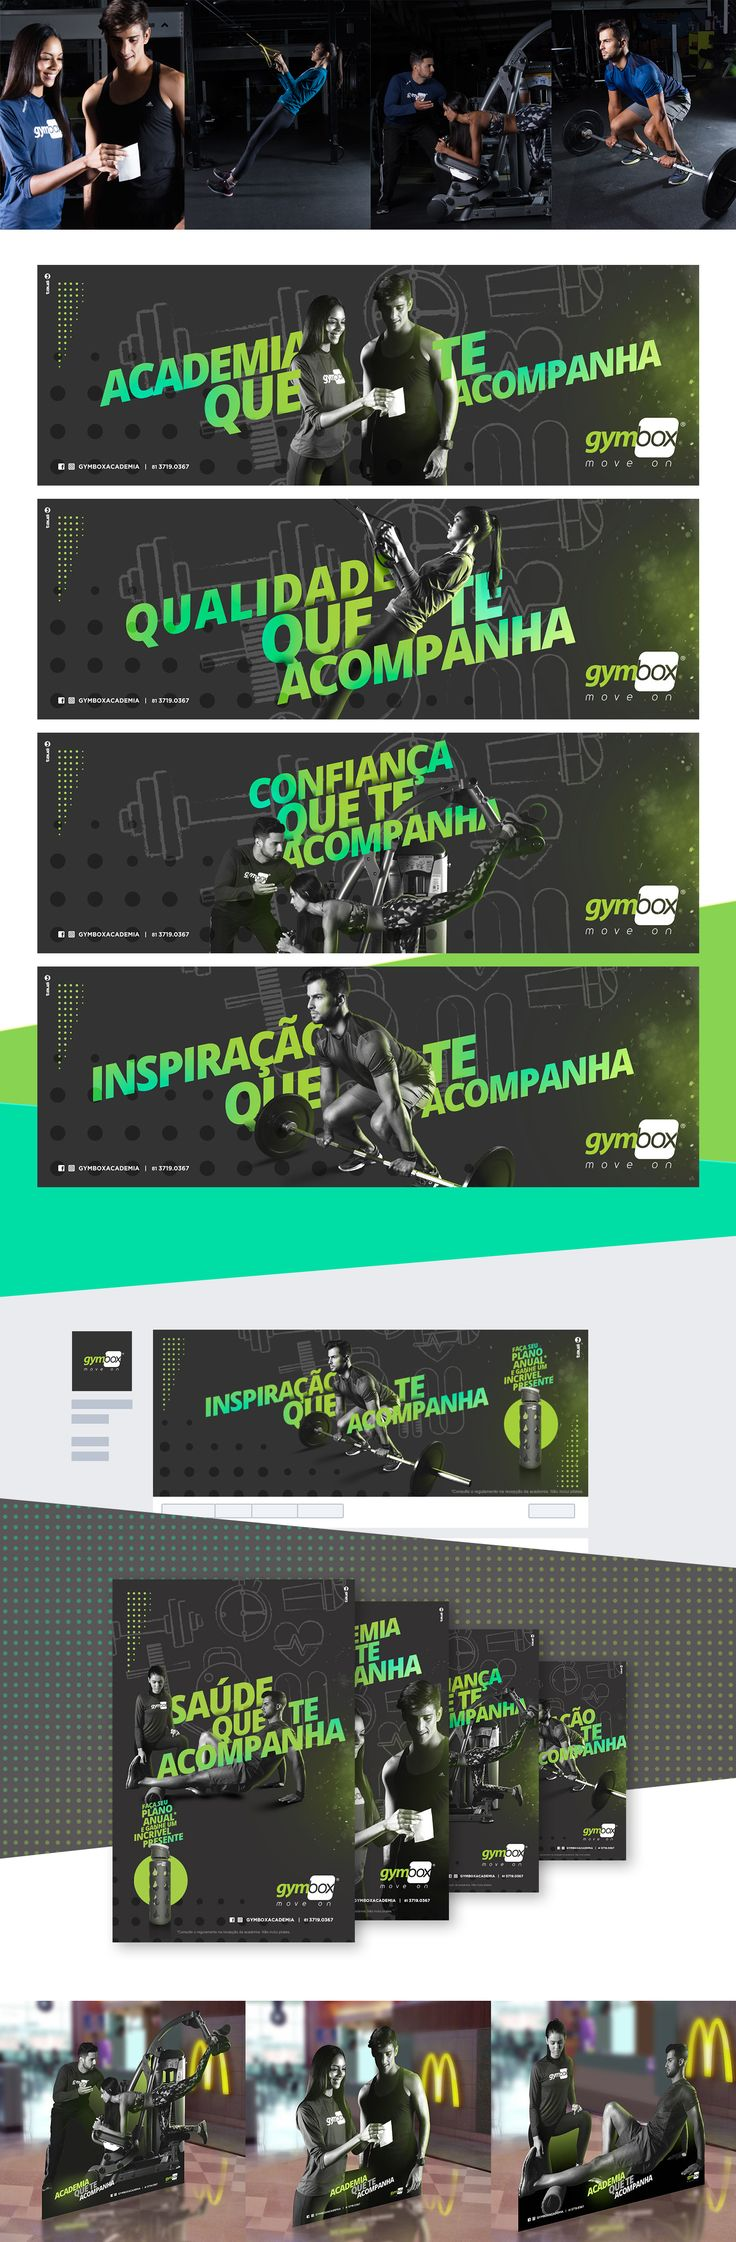 Gymbox - Institucional 2017 on Behance Tap our link now! Our main focus is Quality Over Quantity while still keeping our Products as affordable as possible!